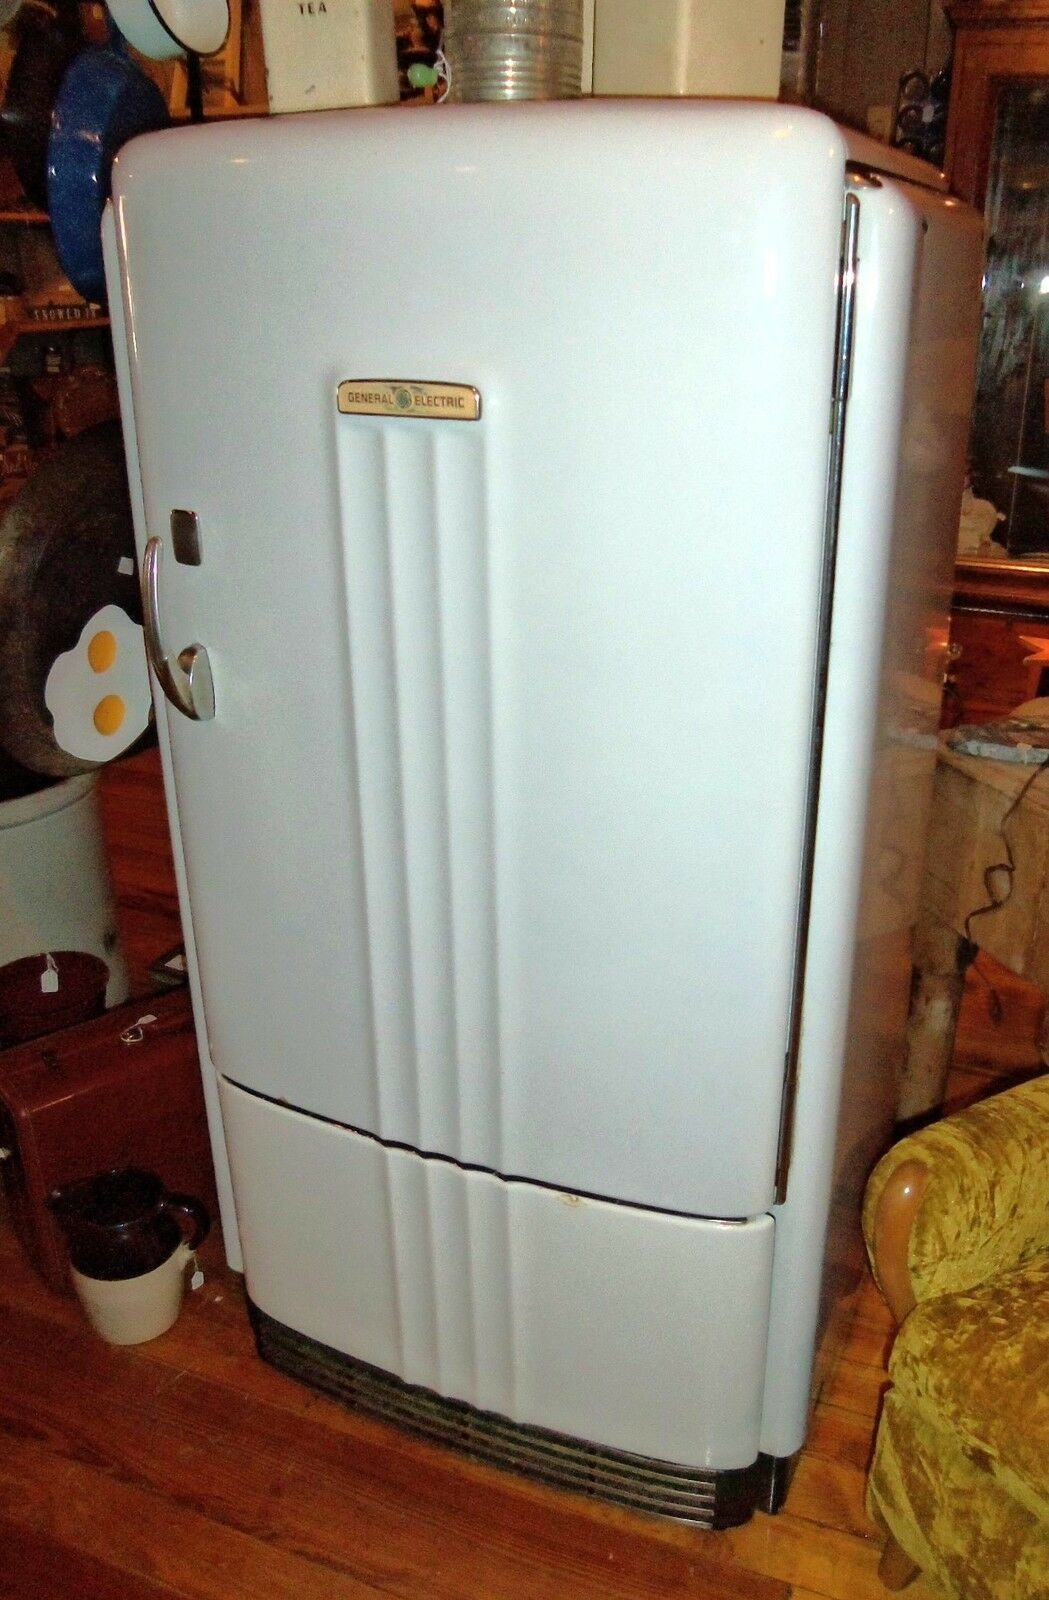 Vintage 1940's General Electric GE Refrigerator PB8-39-A